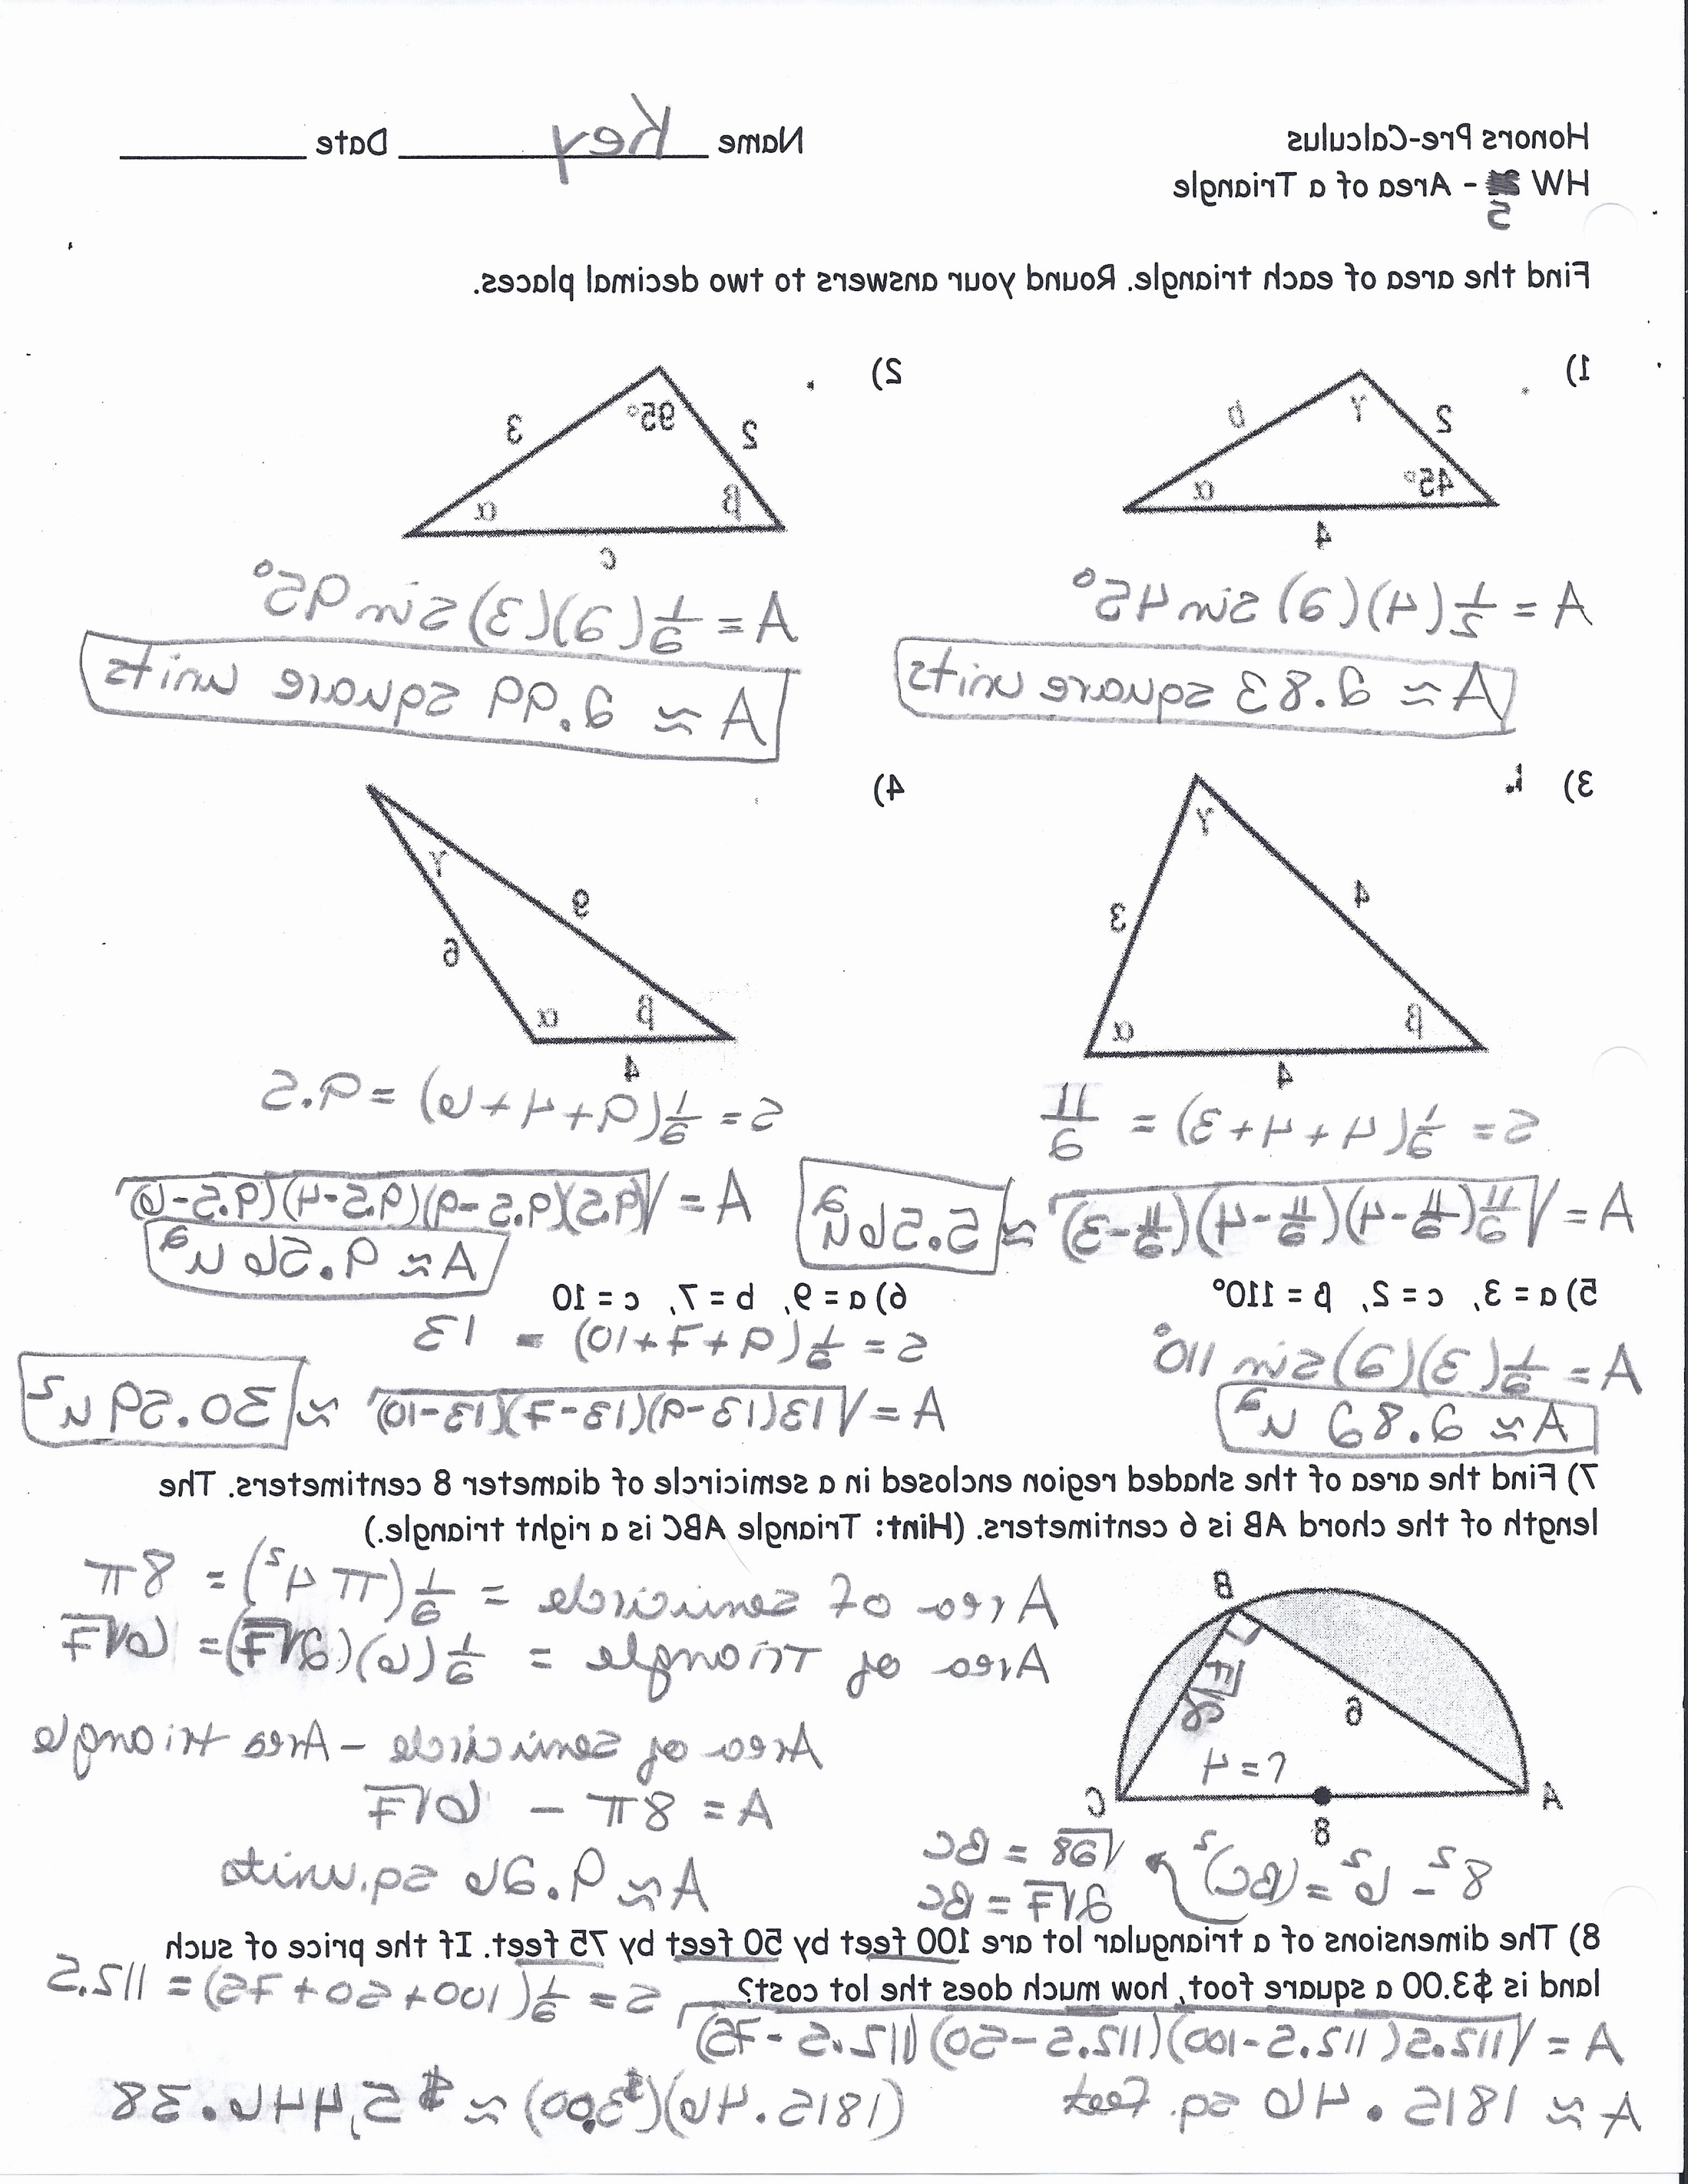 Right Triangle Trig Worksheet Answers Inspirational Right Triangle Trigonometry Worksheet with Answers